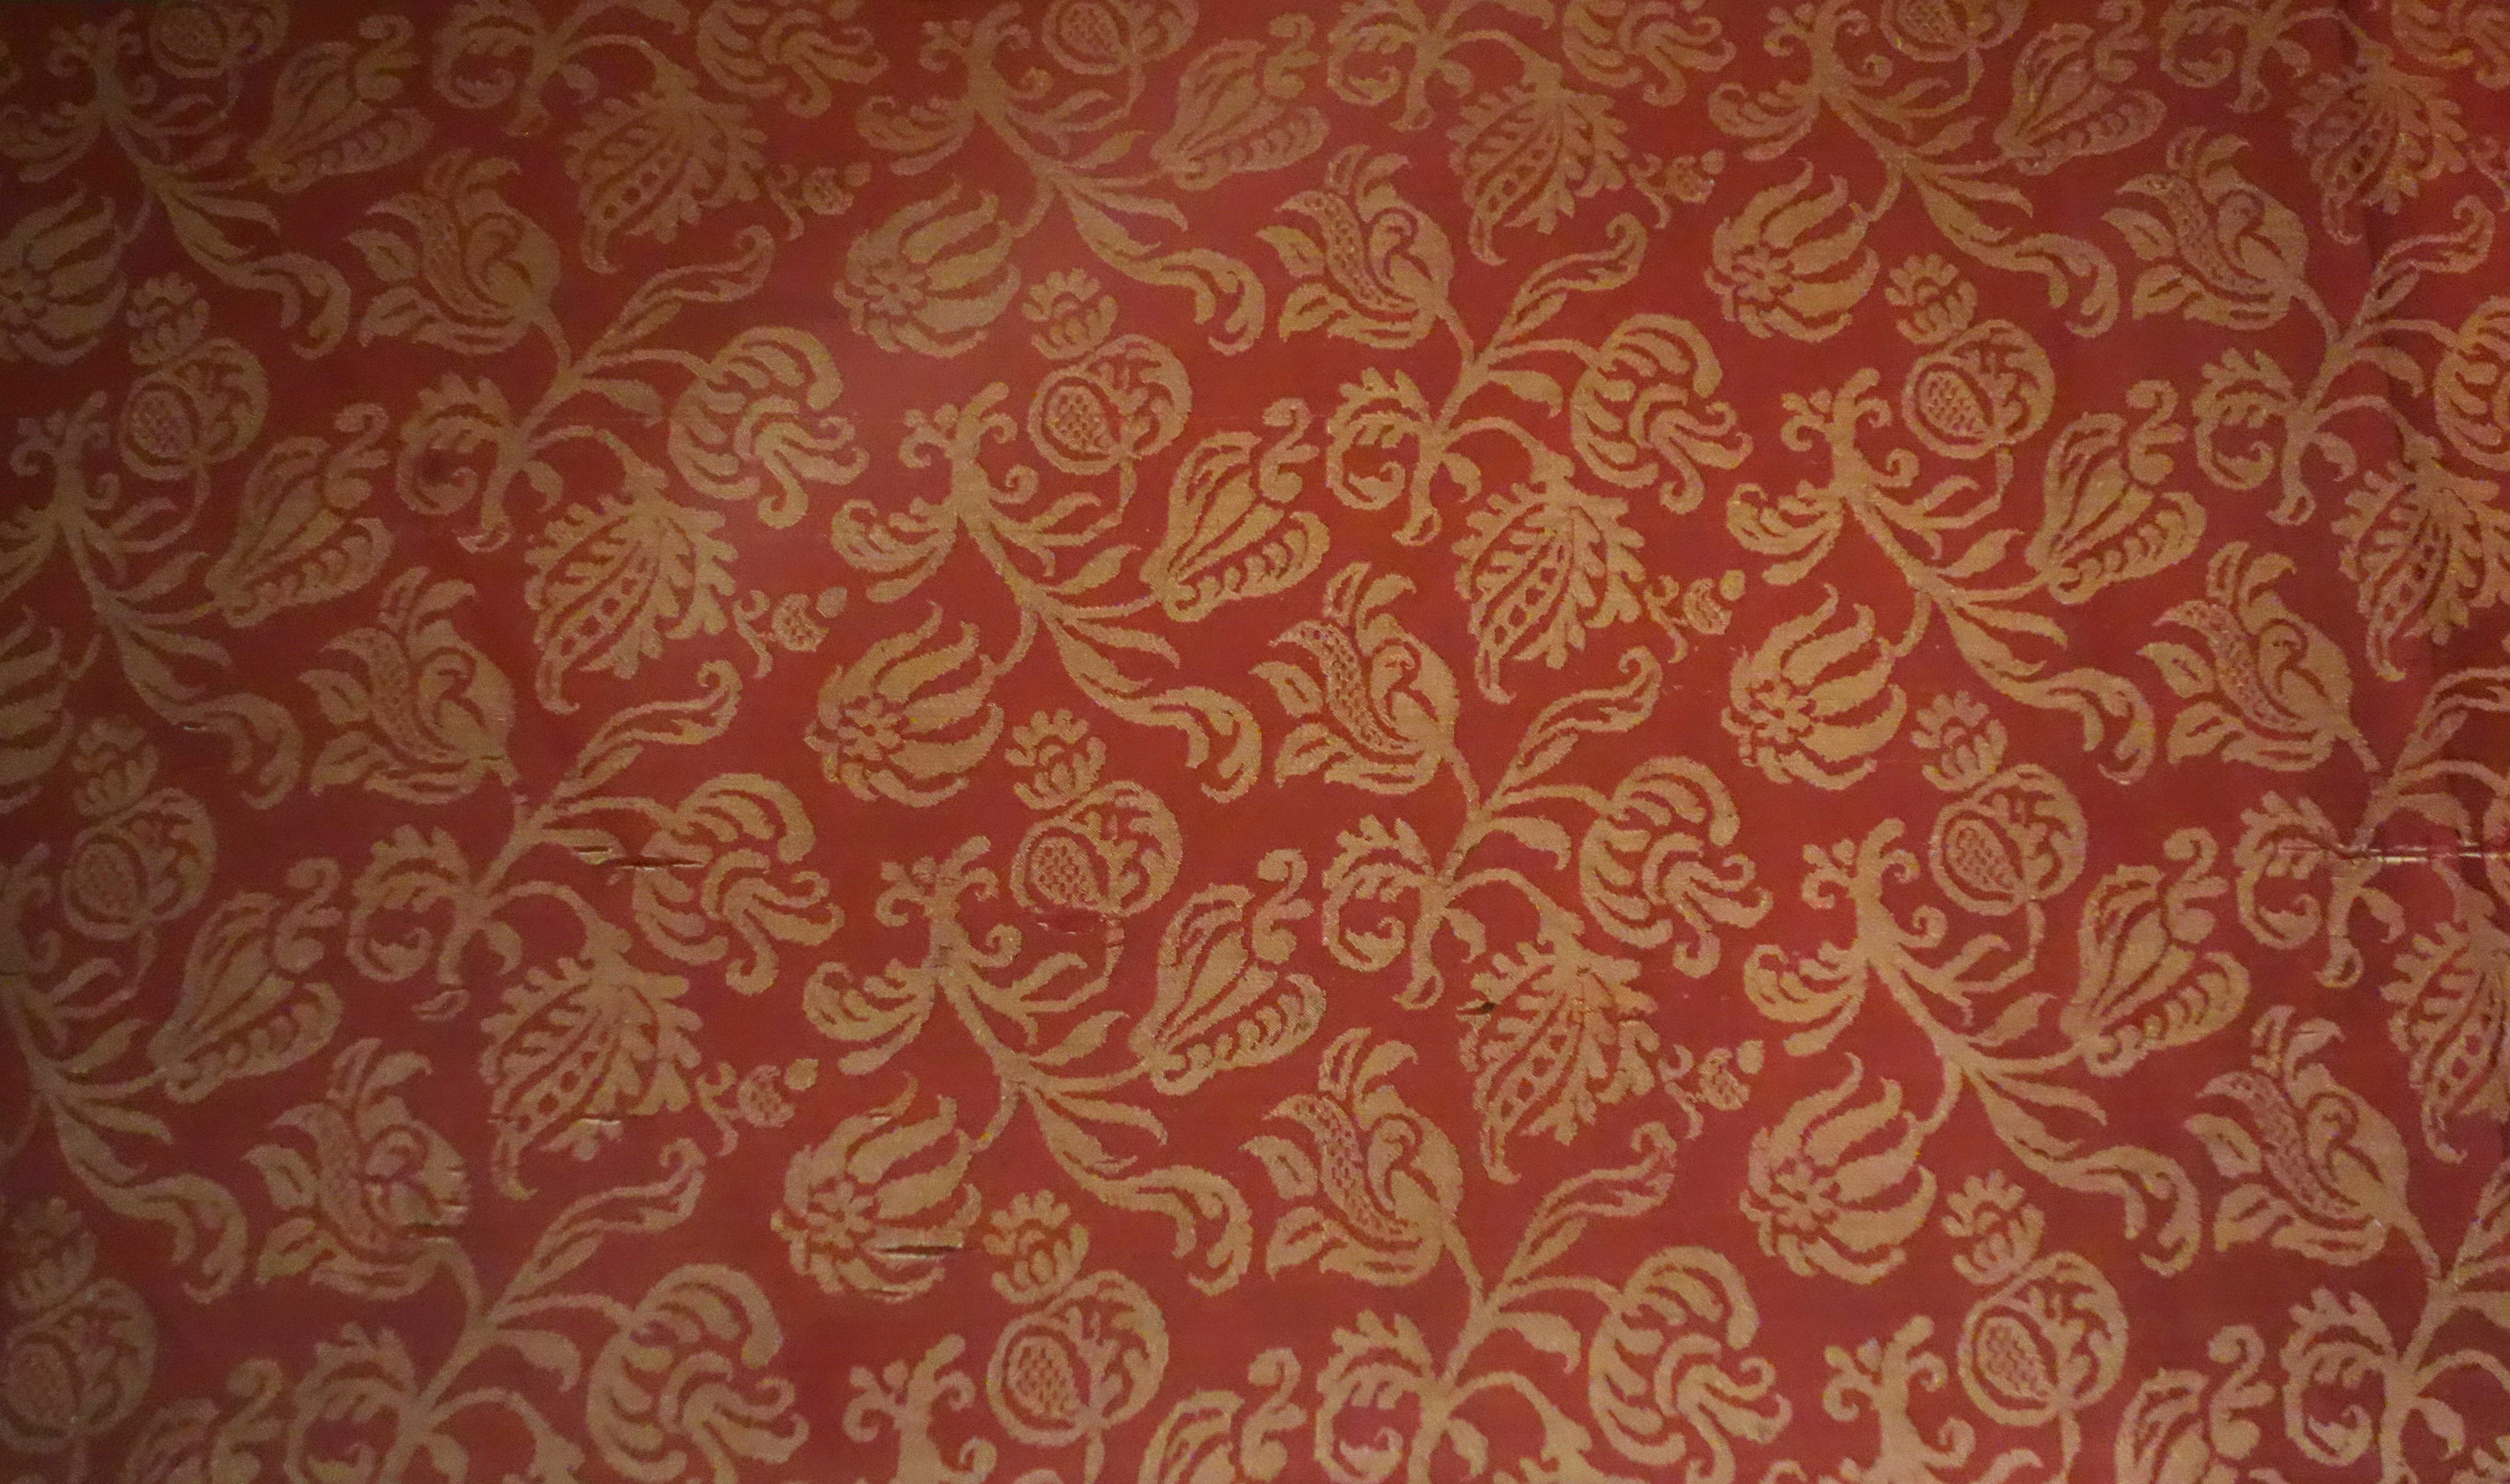 File Damask With Floral Sprigs Italy Baroque 1600 1650